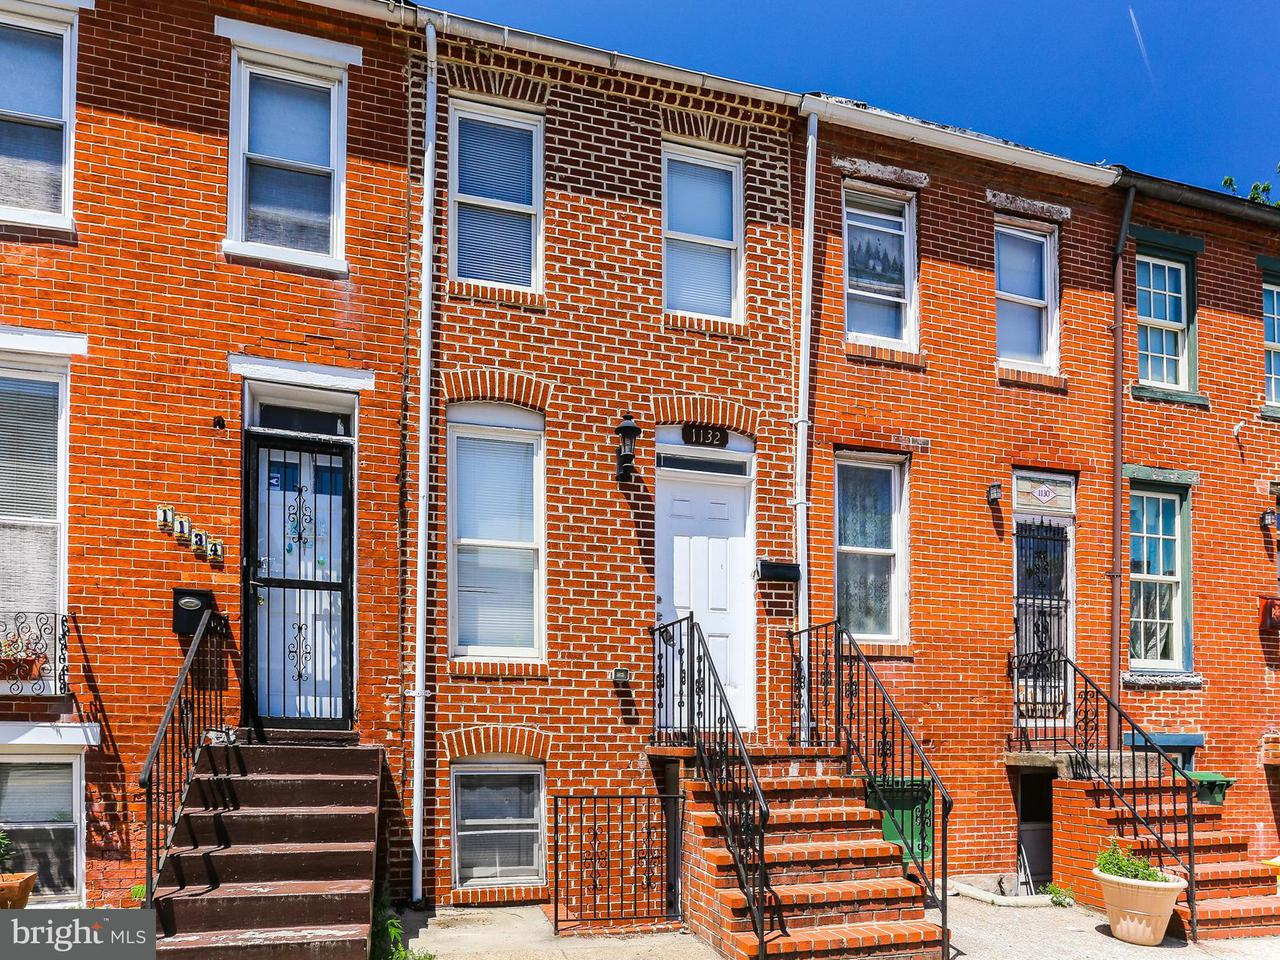 Single Family for Sale at 1132 Lombard St W Baltimore, Maryland 21223 United States